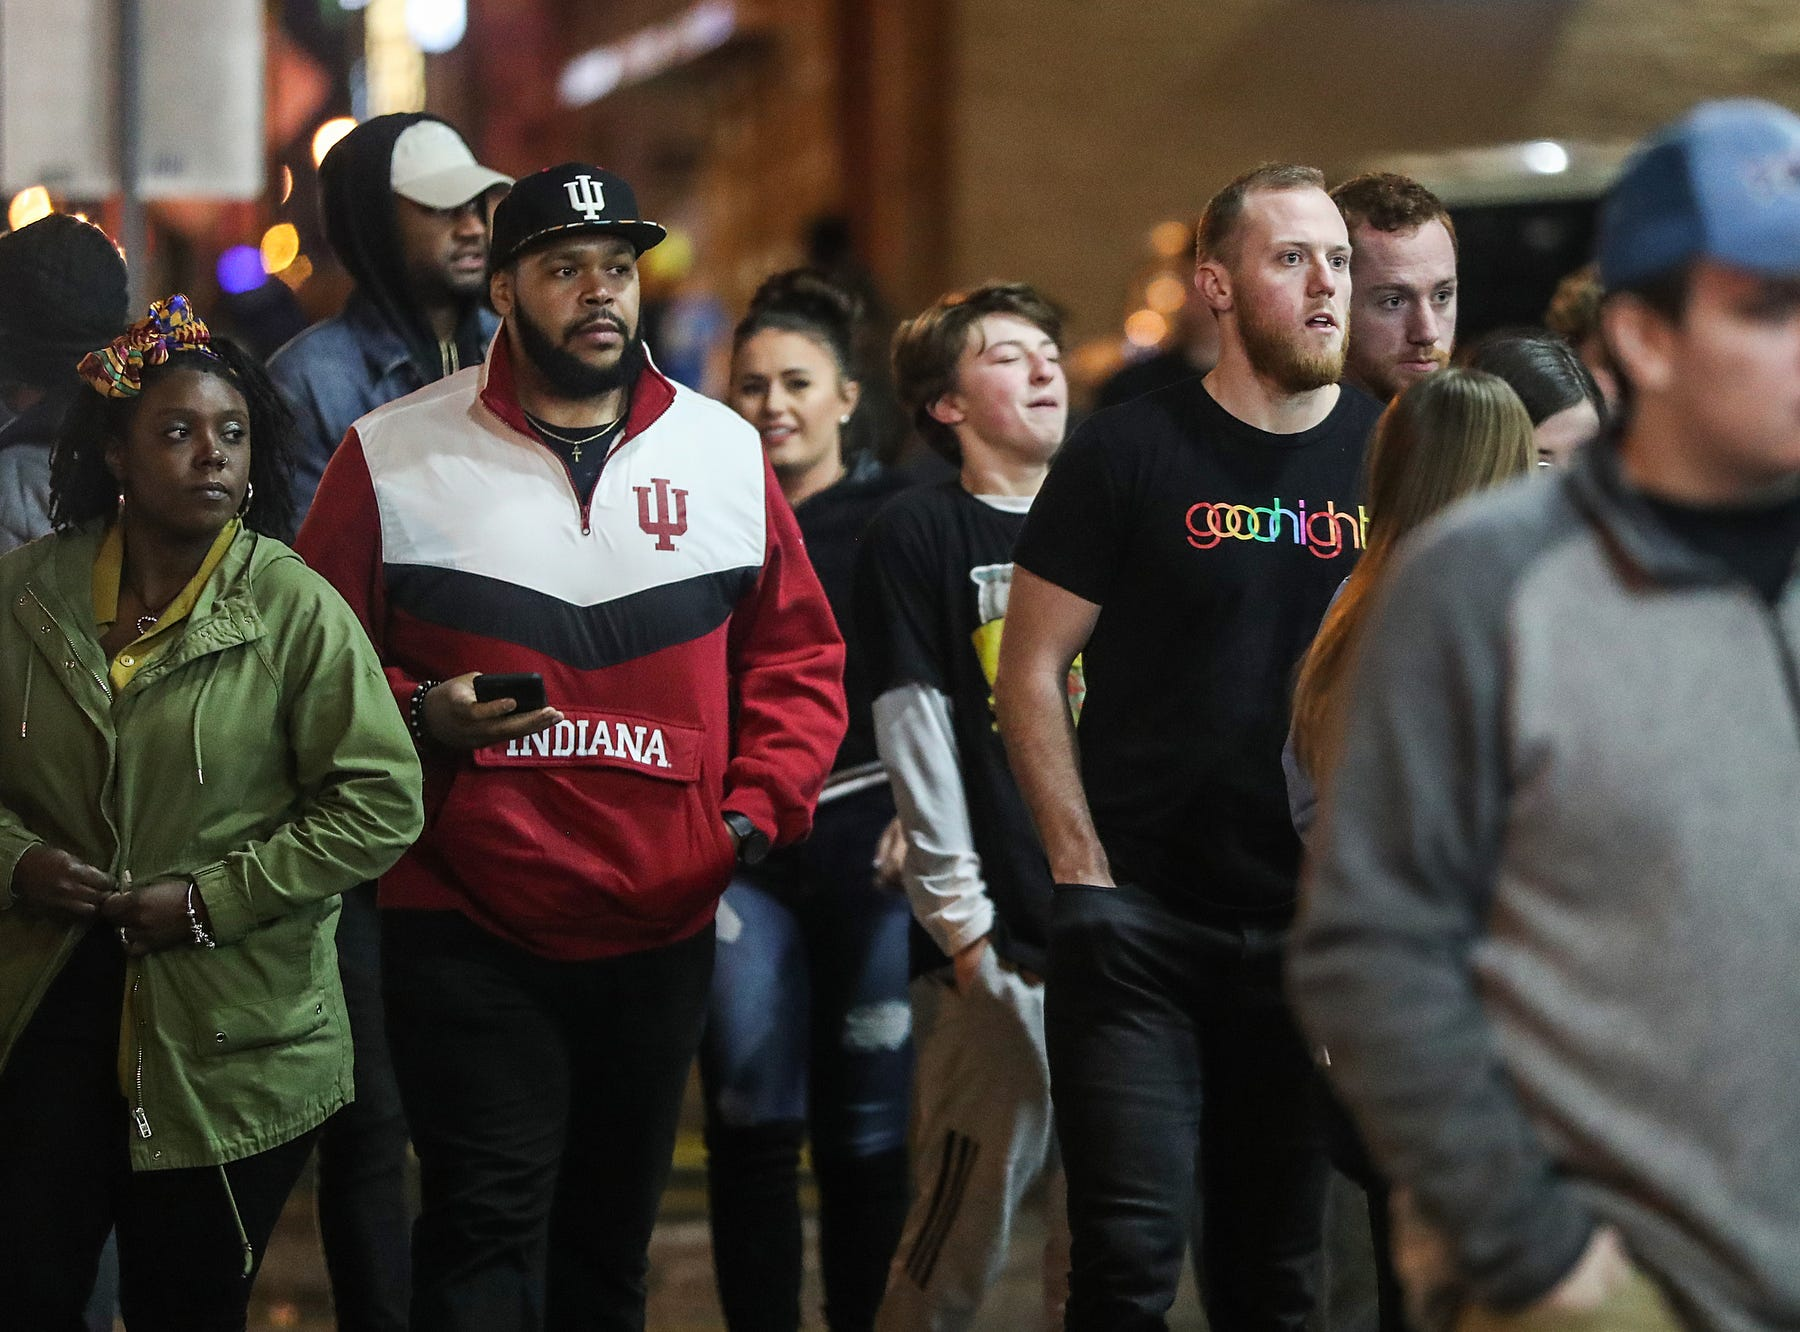 Fans make their way into Travis Scott's Astroworld Tour at Banker's Life Fieldhouse in Indianapolis on Wednesday, Feb. 20, 2018.